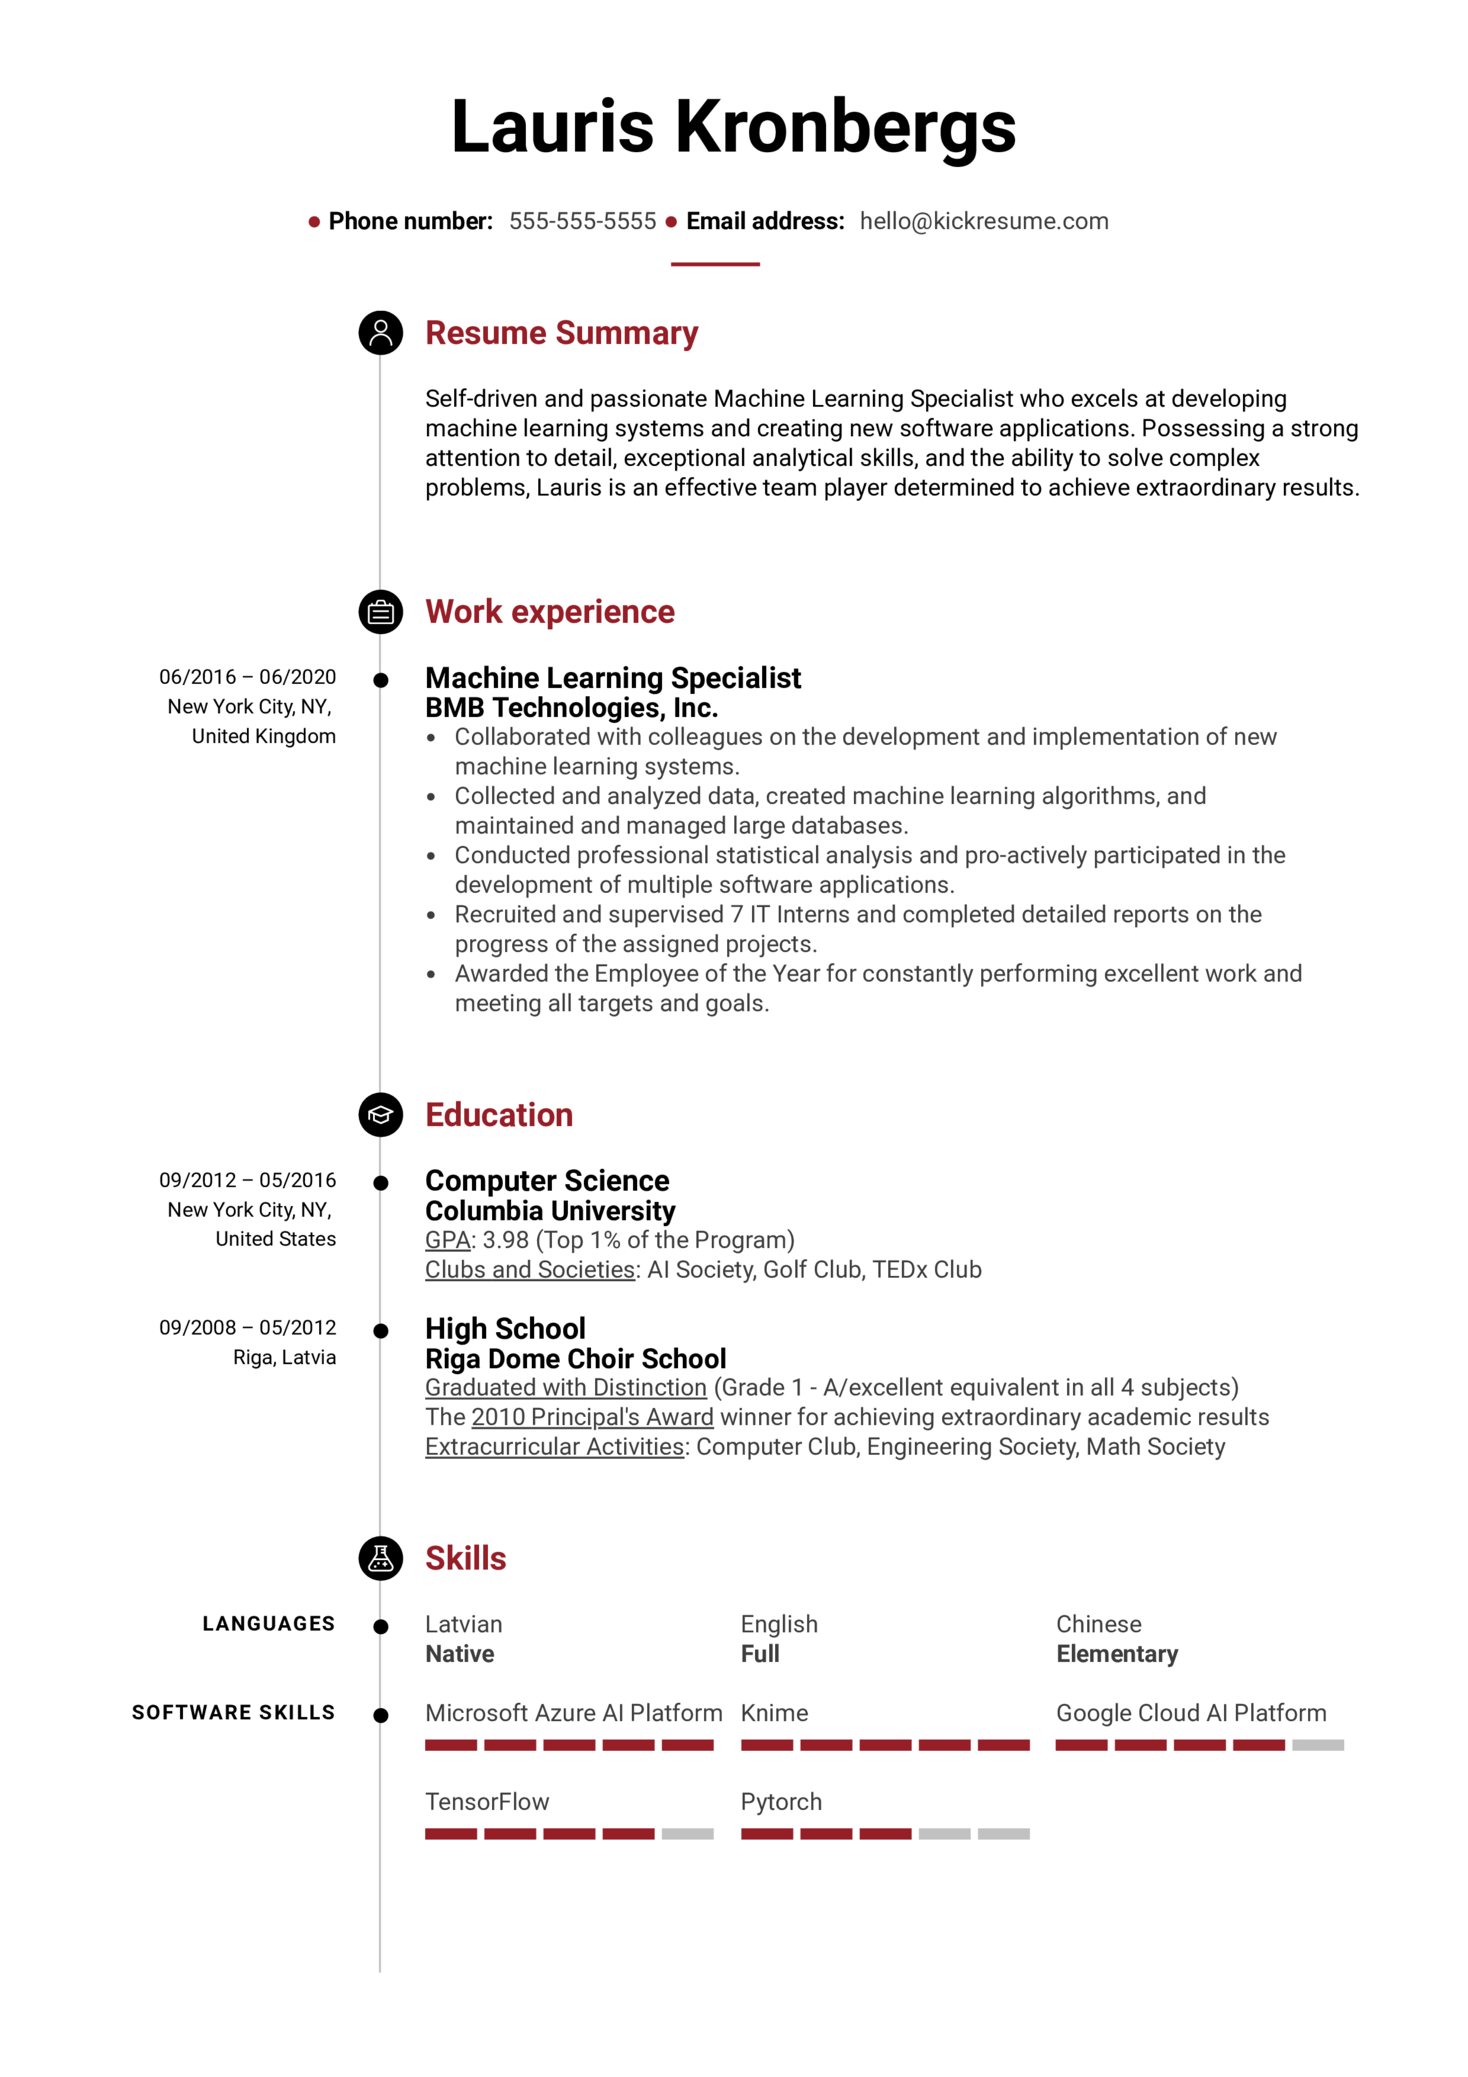 Machine Learning Specialist Resume Example (parte 1)